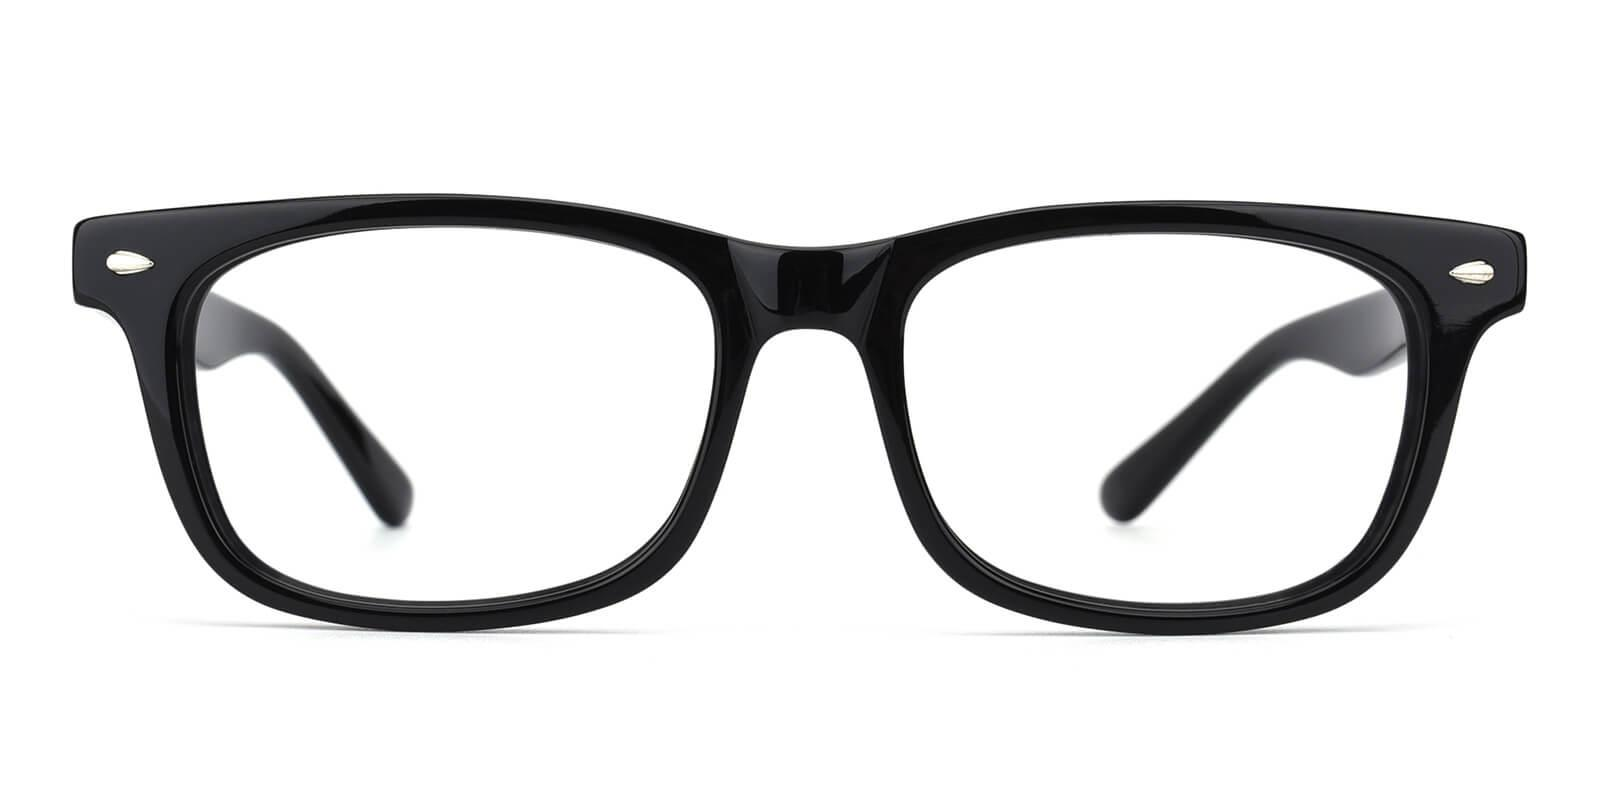 Bladeen-Black-Rectangle-Acetate-Eyeglasses-additional2